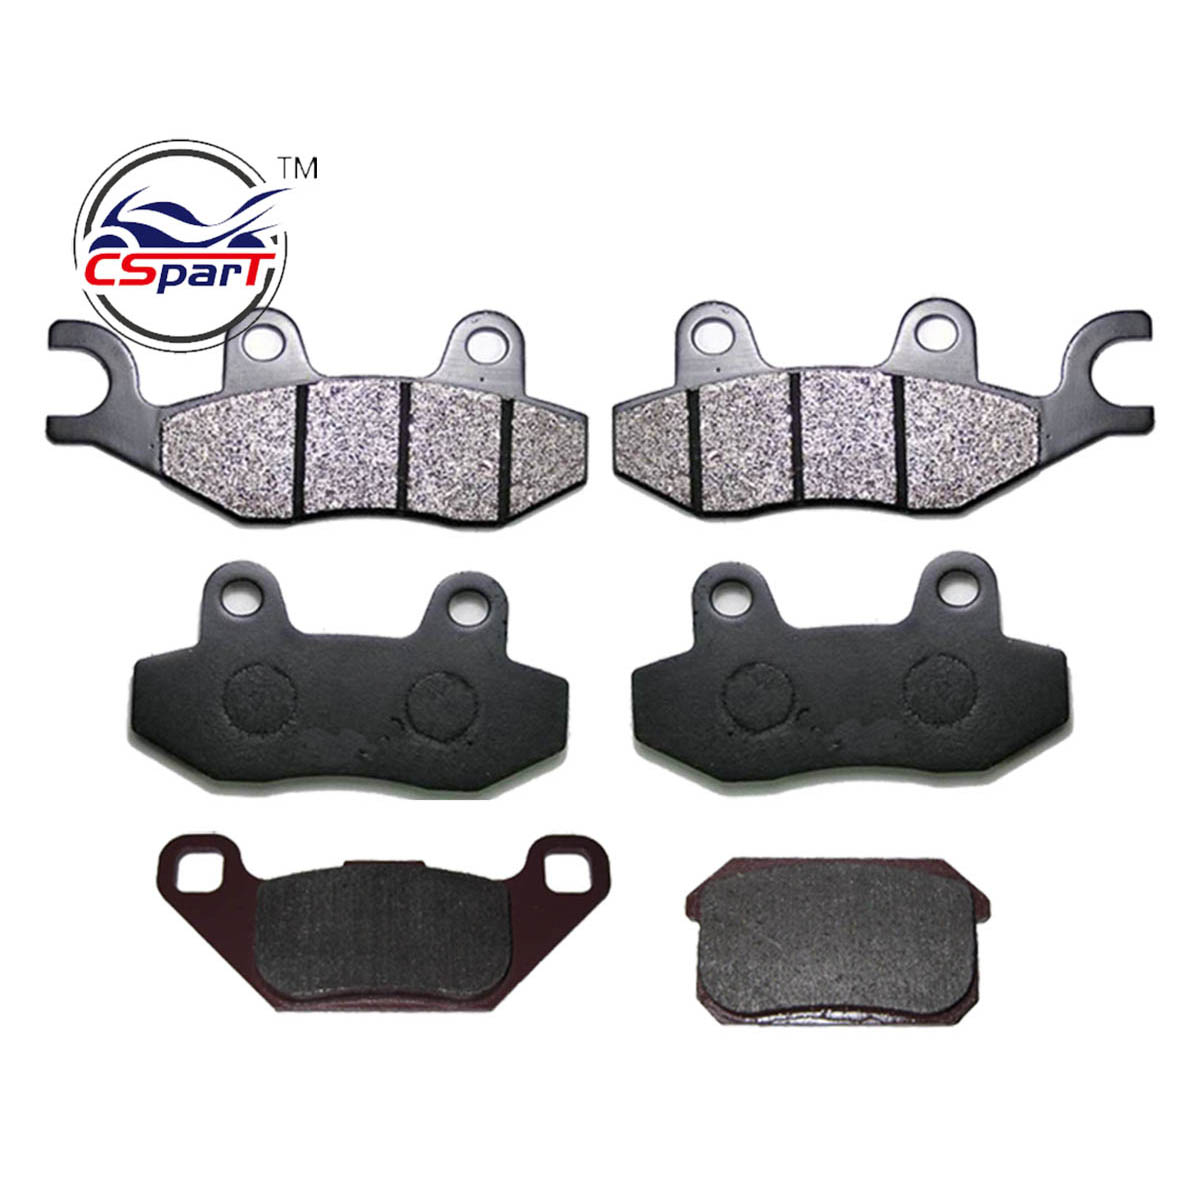 3 Pairs Semi Metallic Front Rear Brake Pad For KAZUMA STELS 500GT 500CC ATV UTV